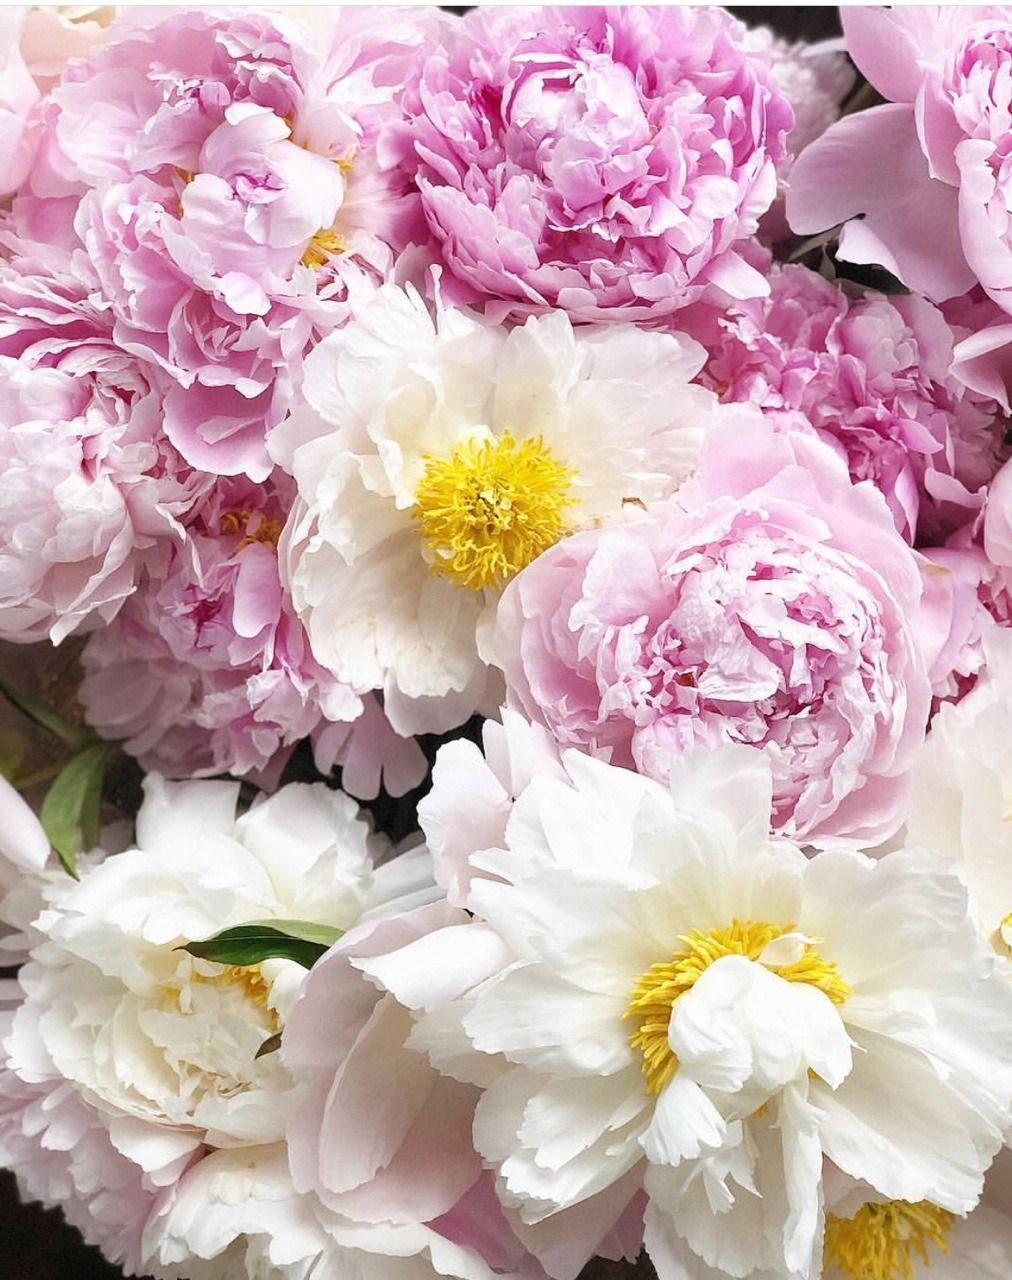 All The Pretty Flowers August 3 2018 Pinterest Flowers Pretty